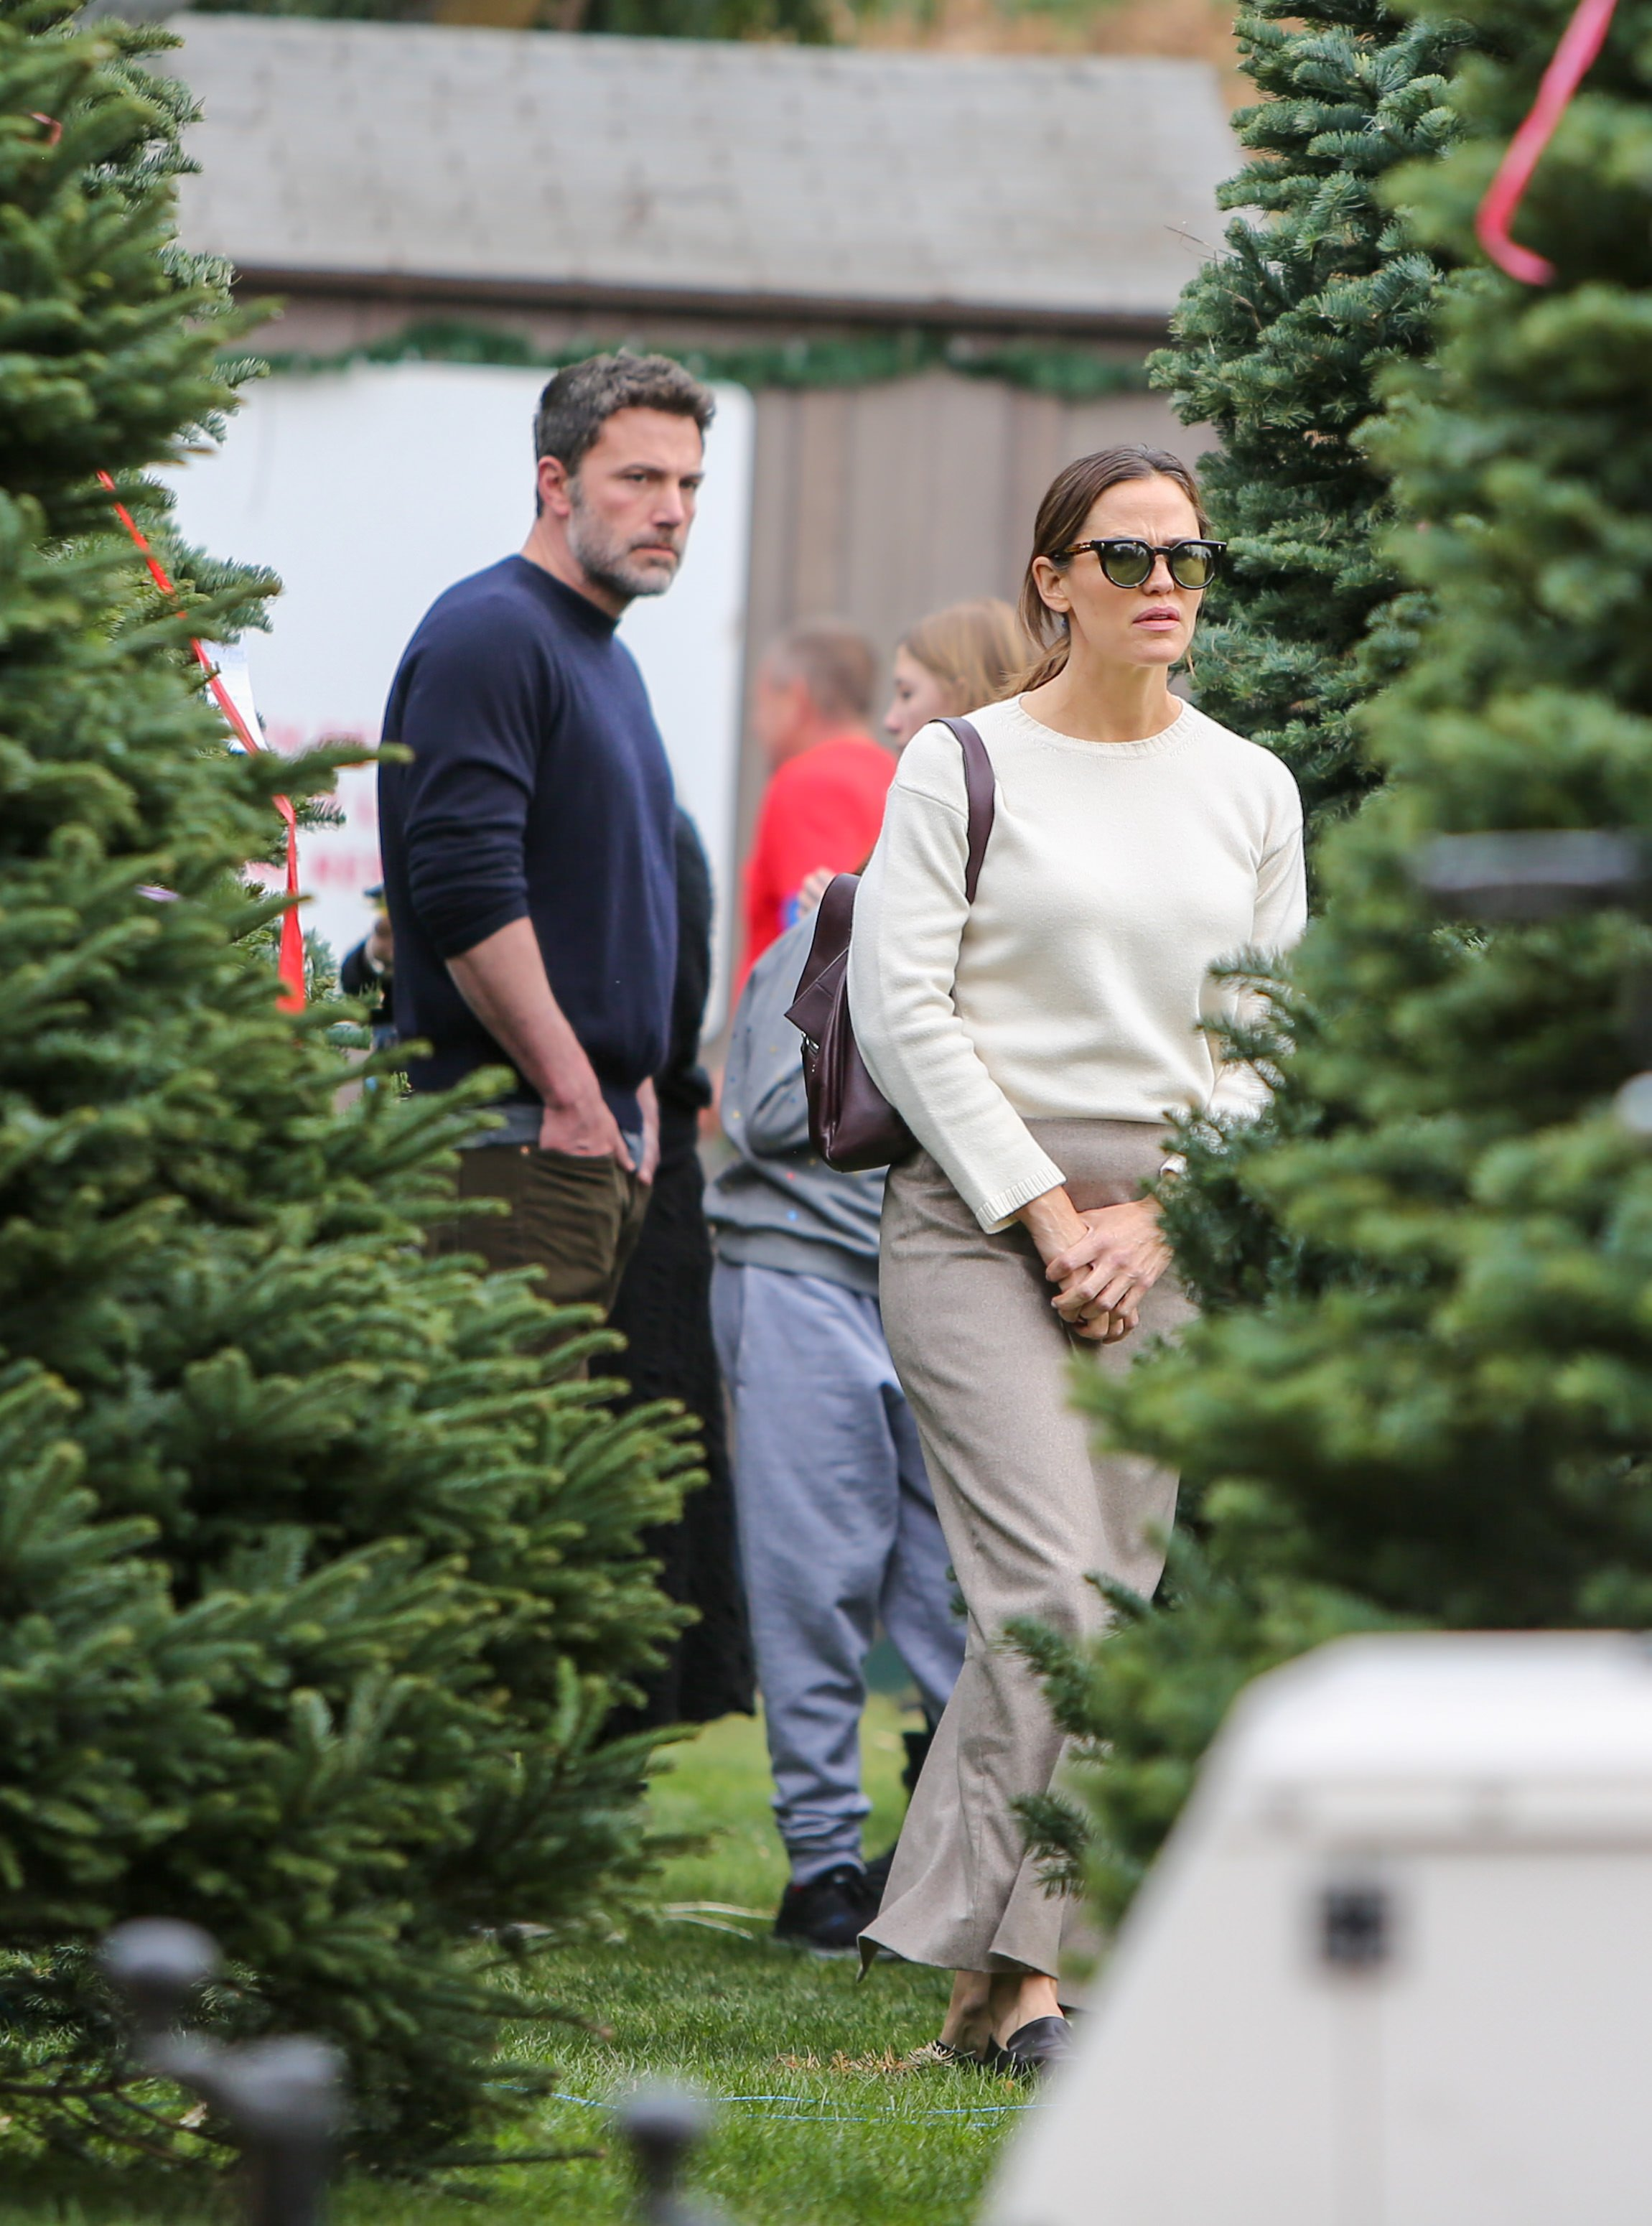 Ben Affleck and Jennifer Garner are seen on November 30, 2019 in Los Angeles, California. | Source: Getty Images.